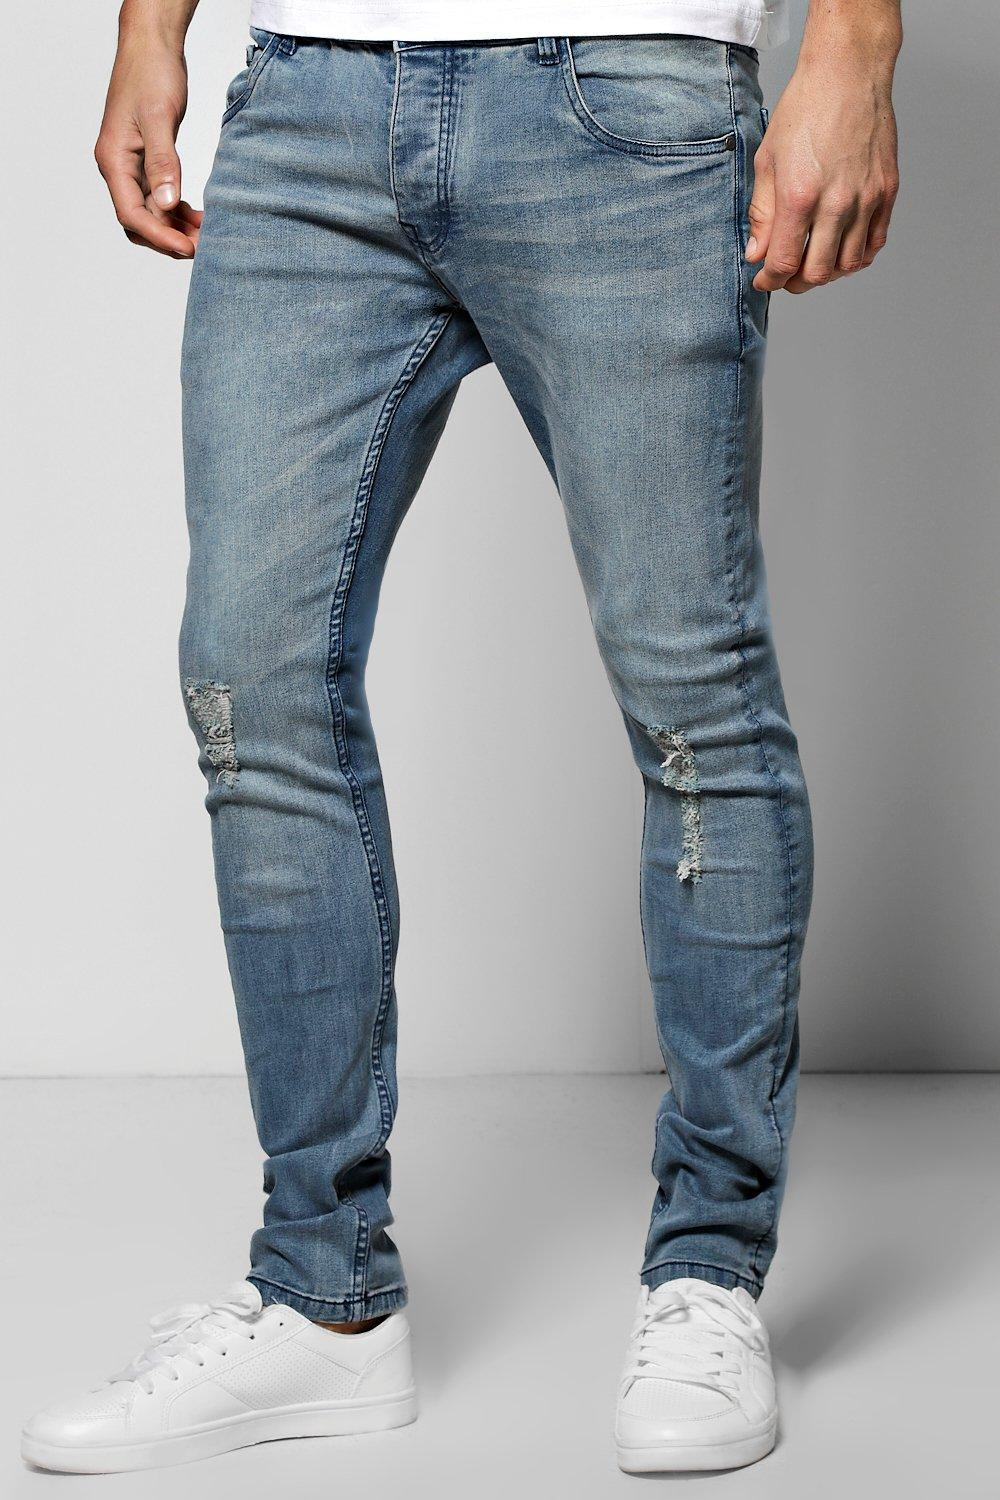 Stretch Skinny Mid Blue Jeans with Abrasions